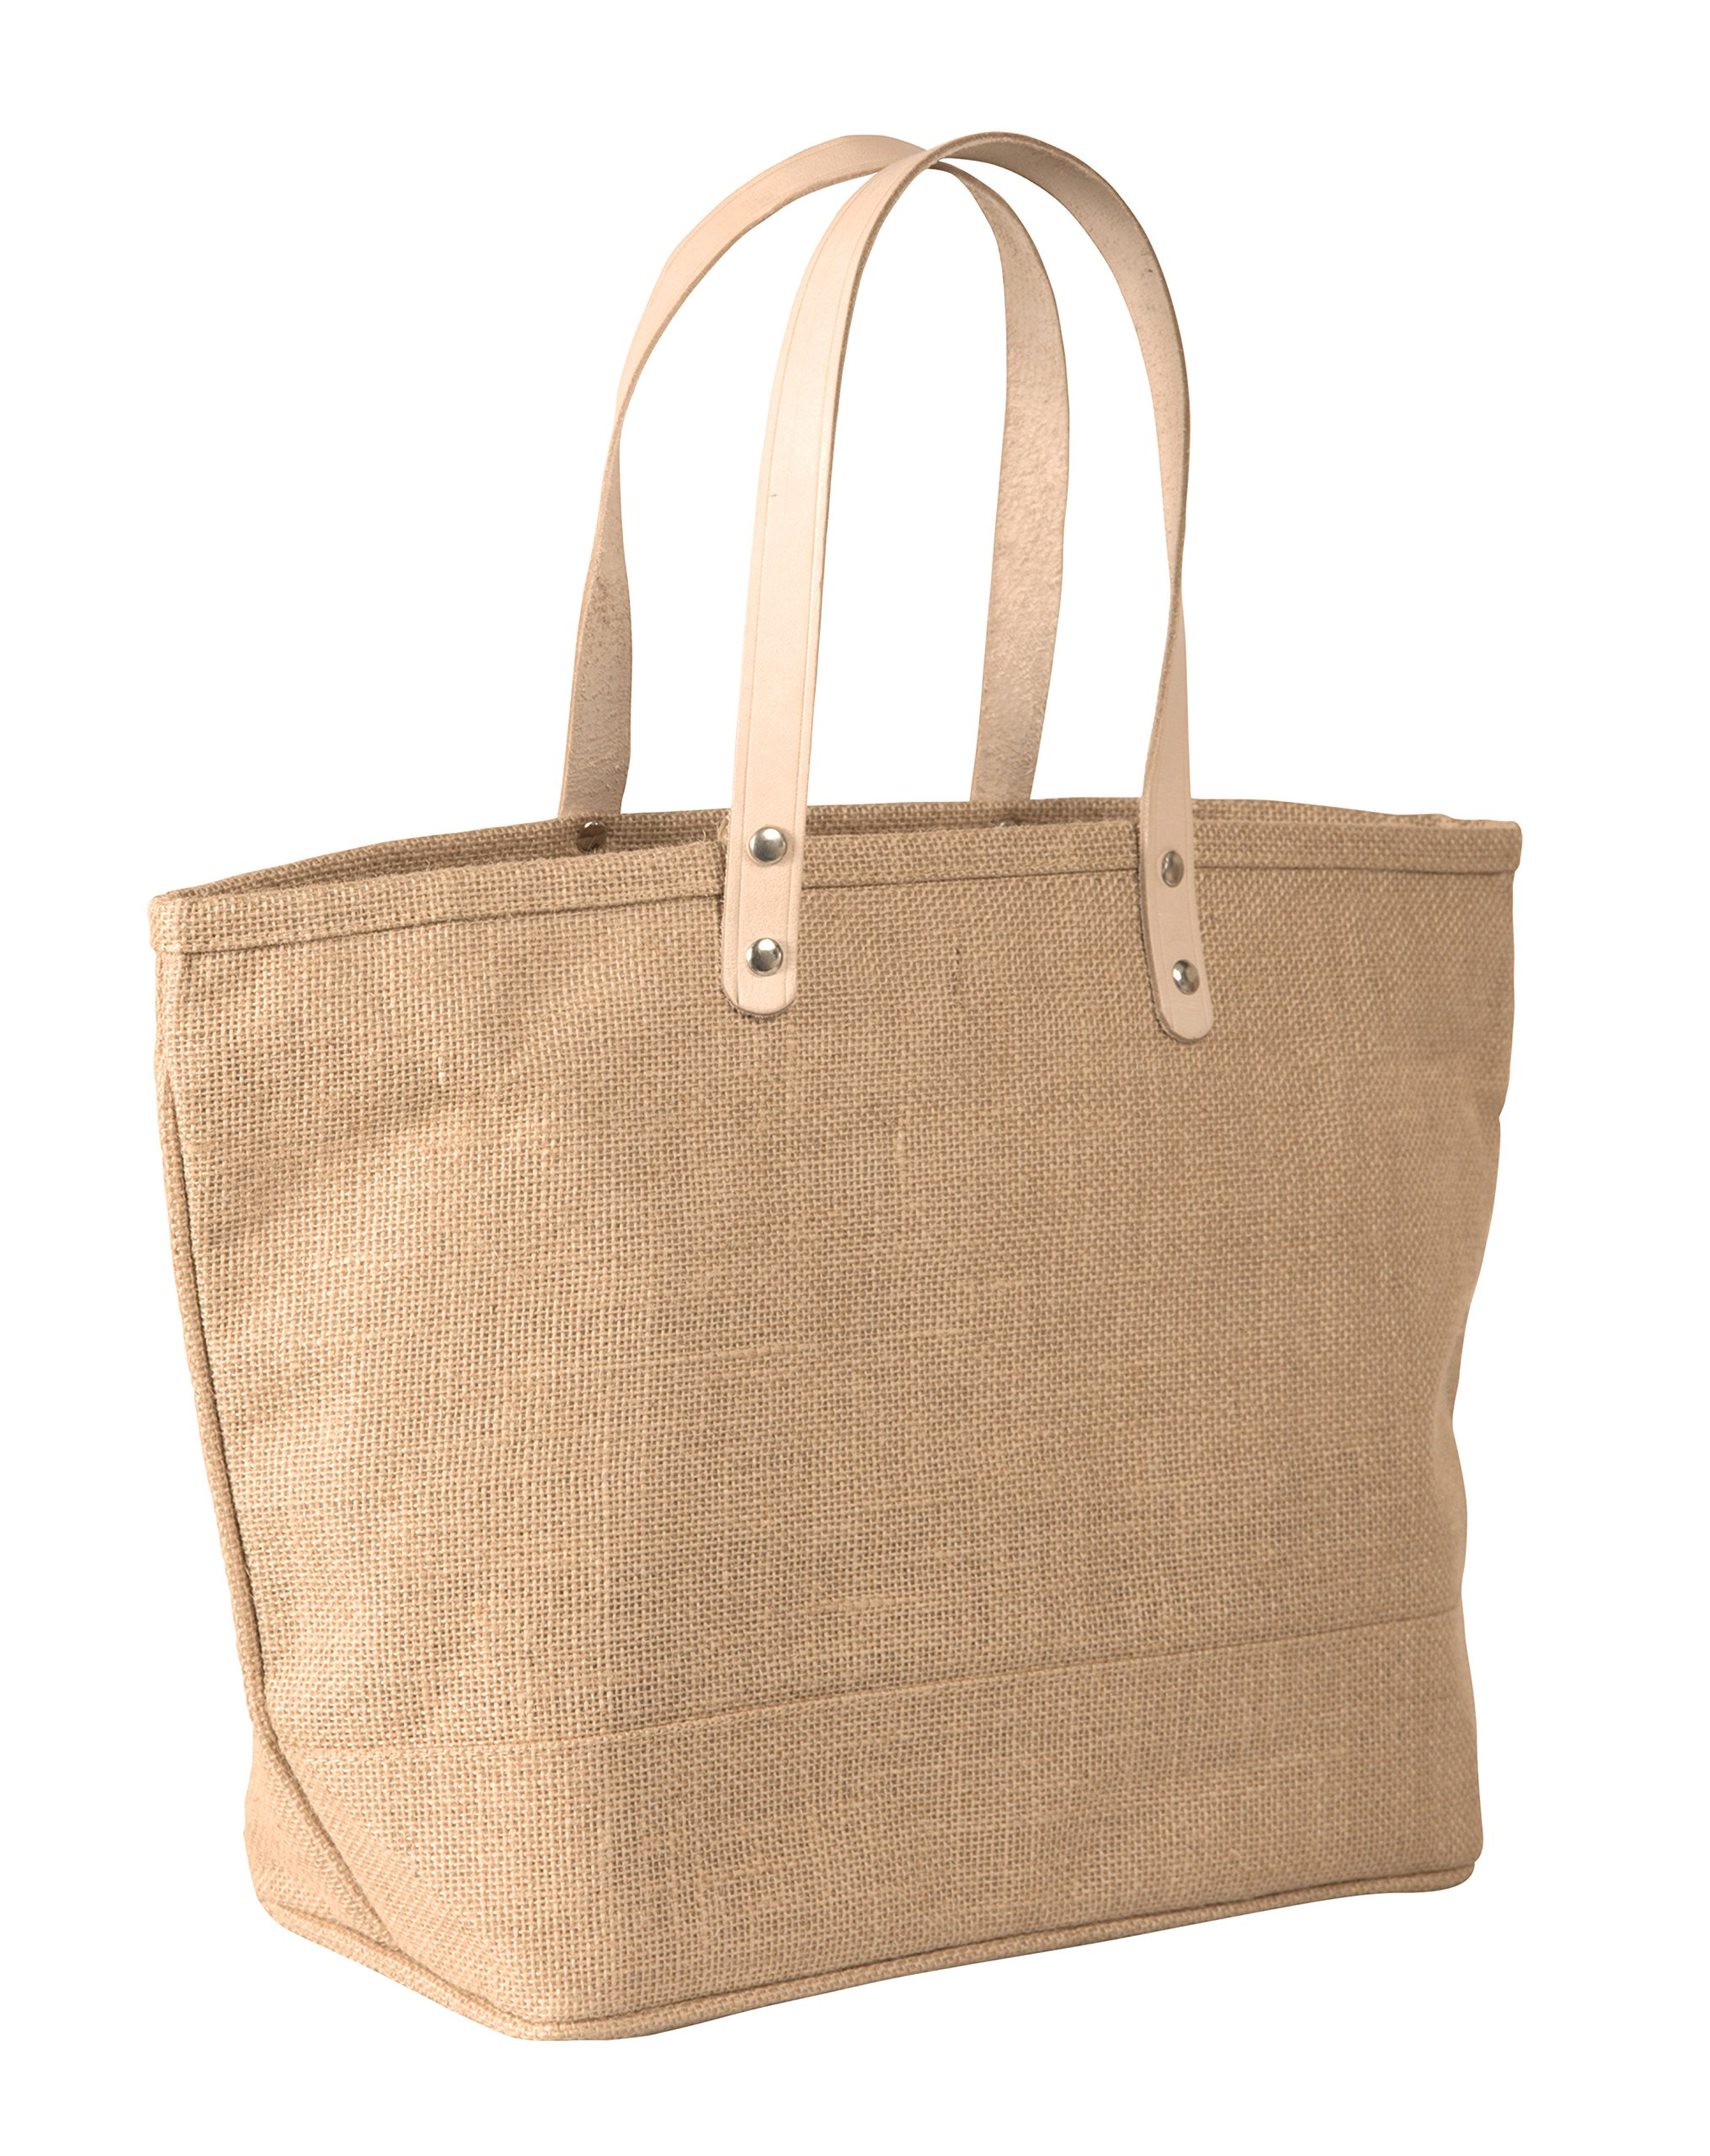 Pack of 6- Small Jute Tote bag with Leather Handles Size 17.25''W x 10.5''H x 5.5'' Gusset in Natural Color - CarrygreenBags